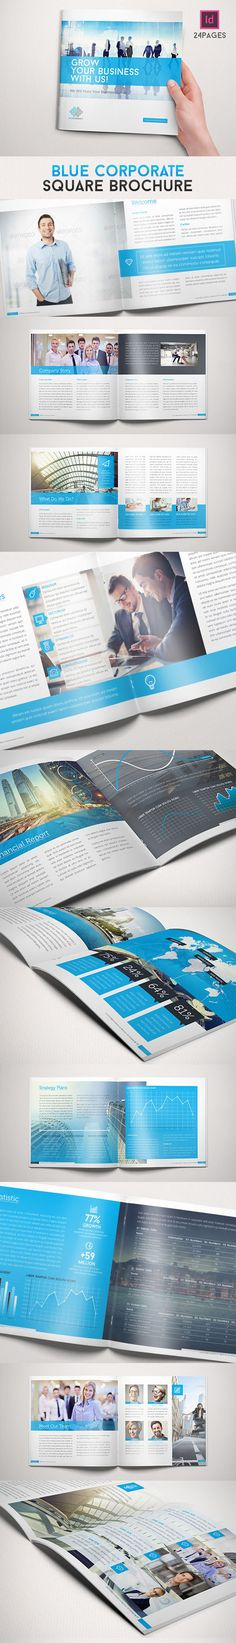 Blue Corporate Square Brochure